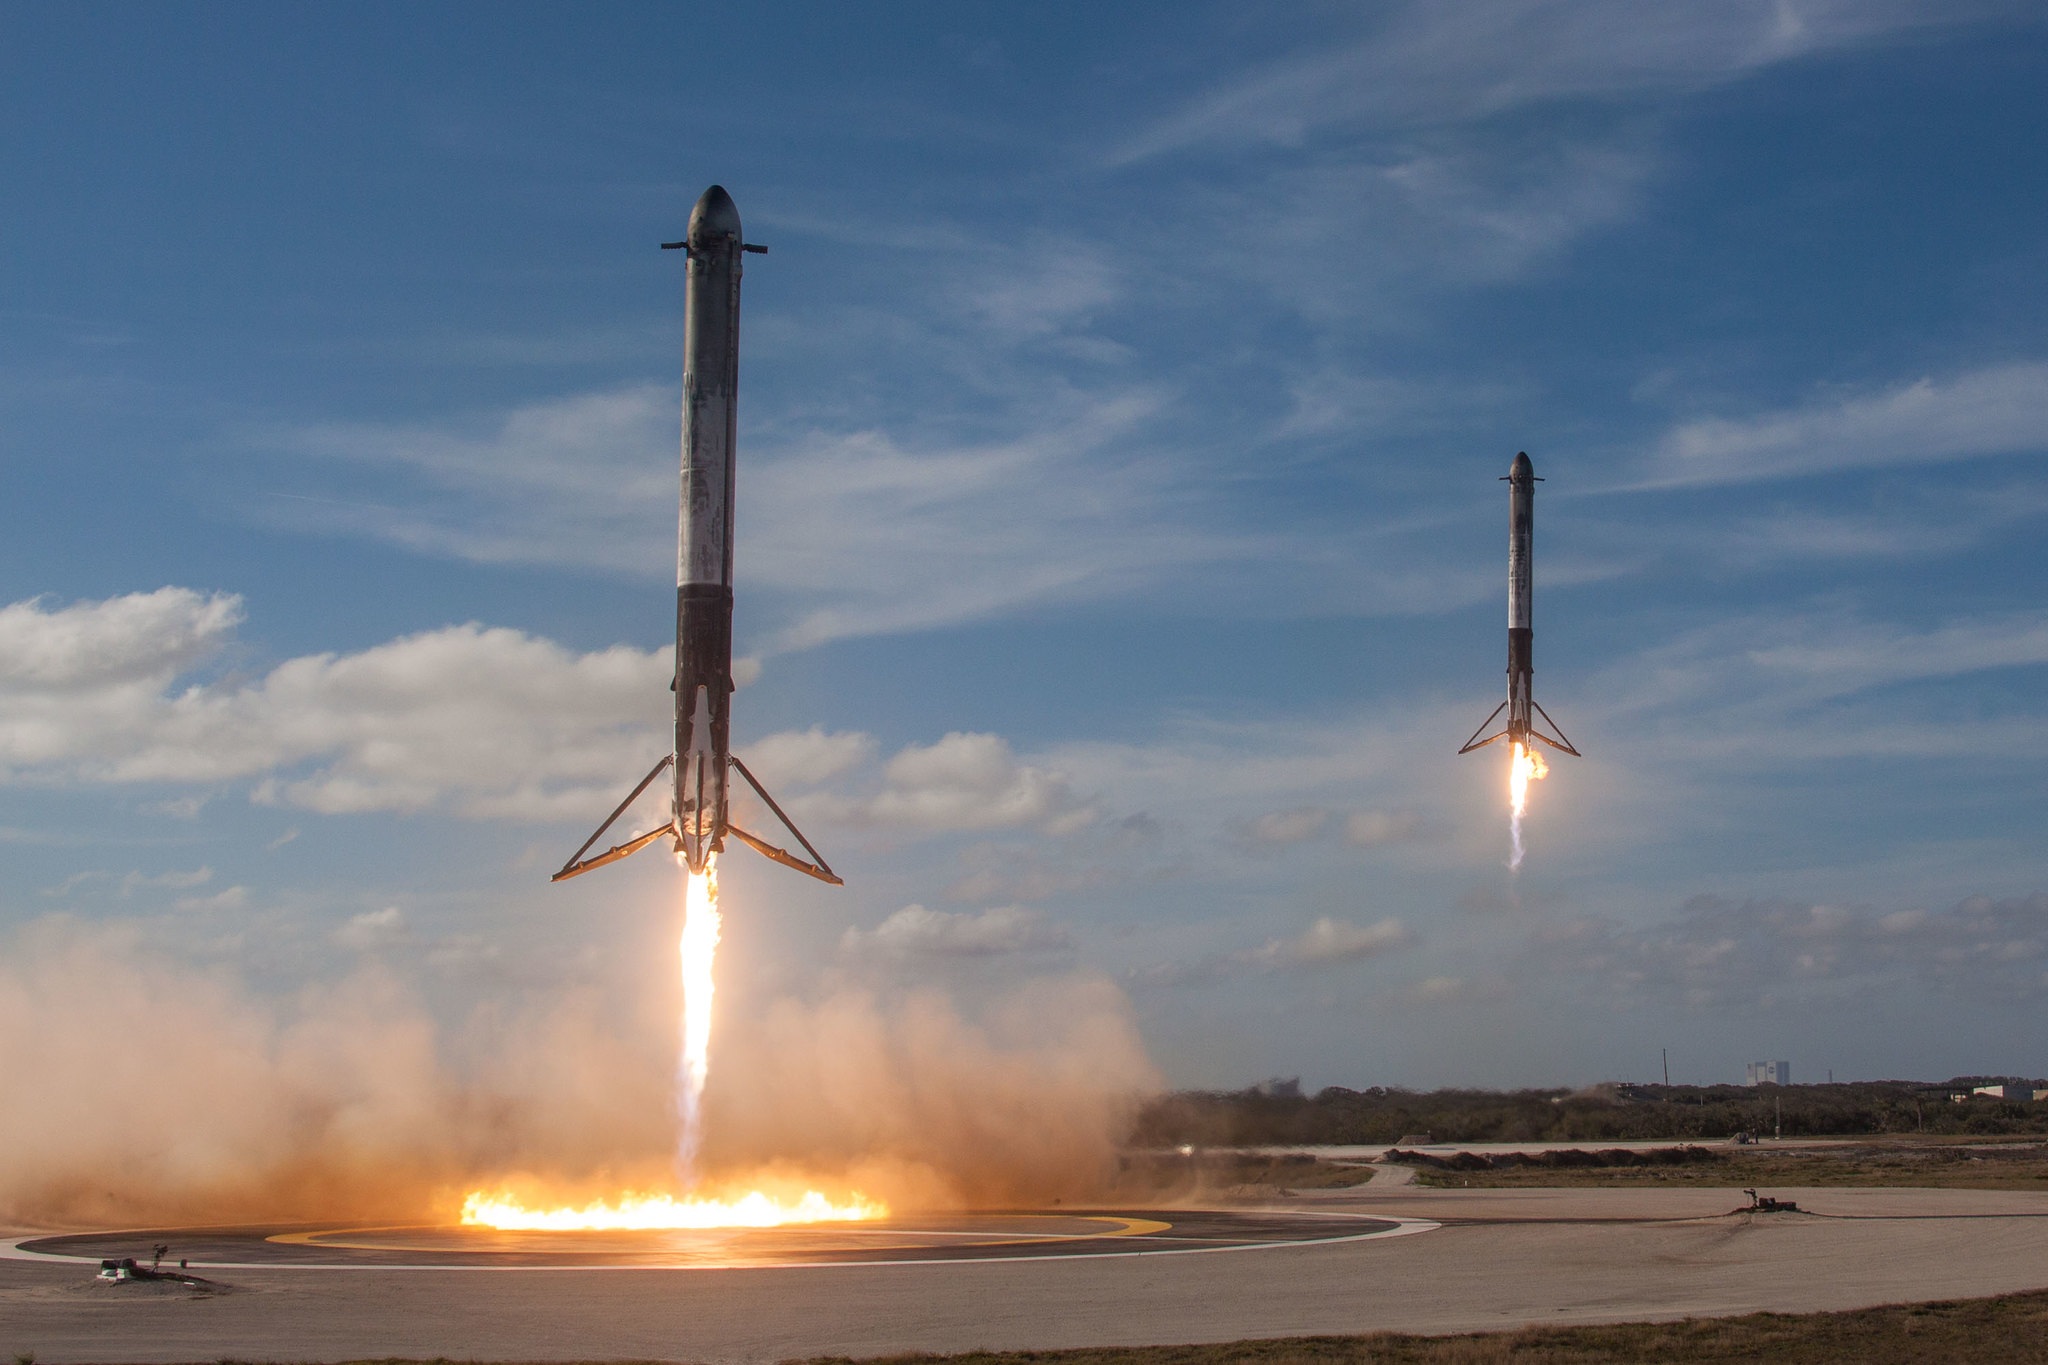 Side boosters from SpaceX Falcon Heavy Rocket land at LZ-1 and LZ-1.